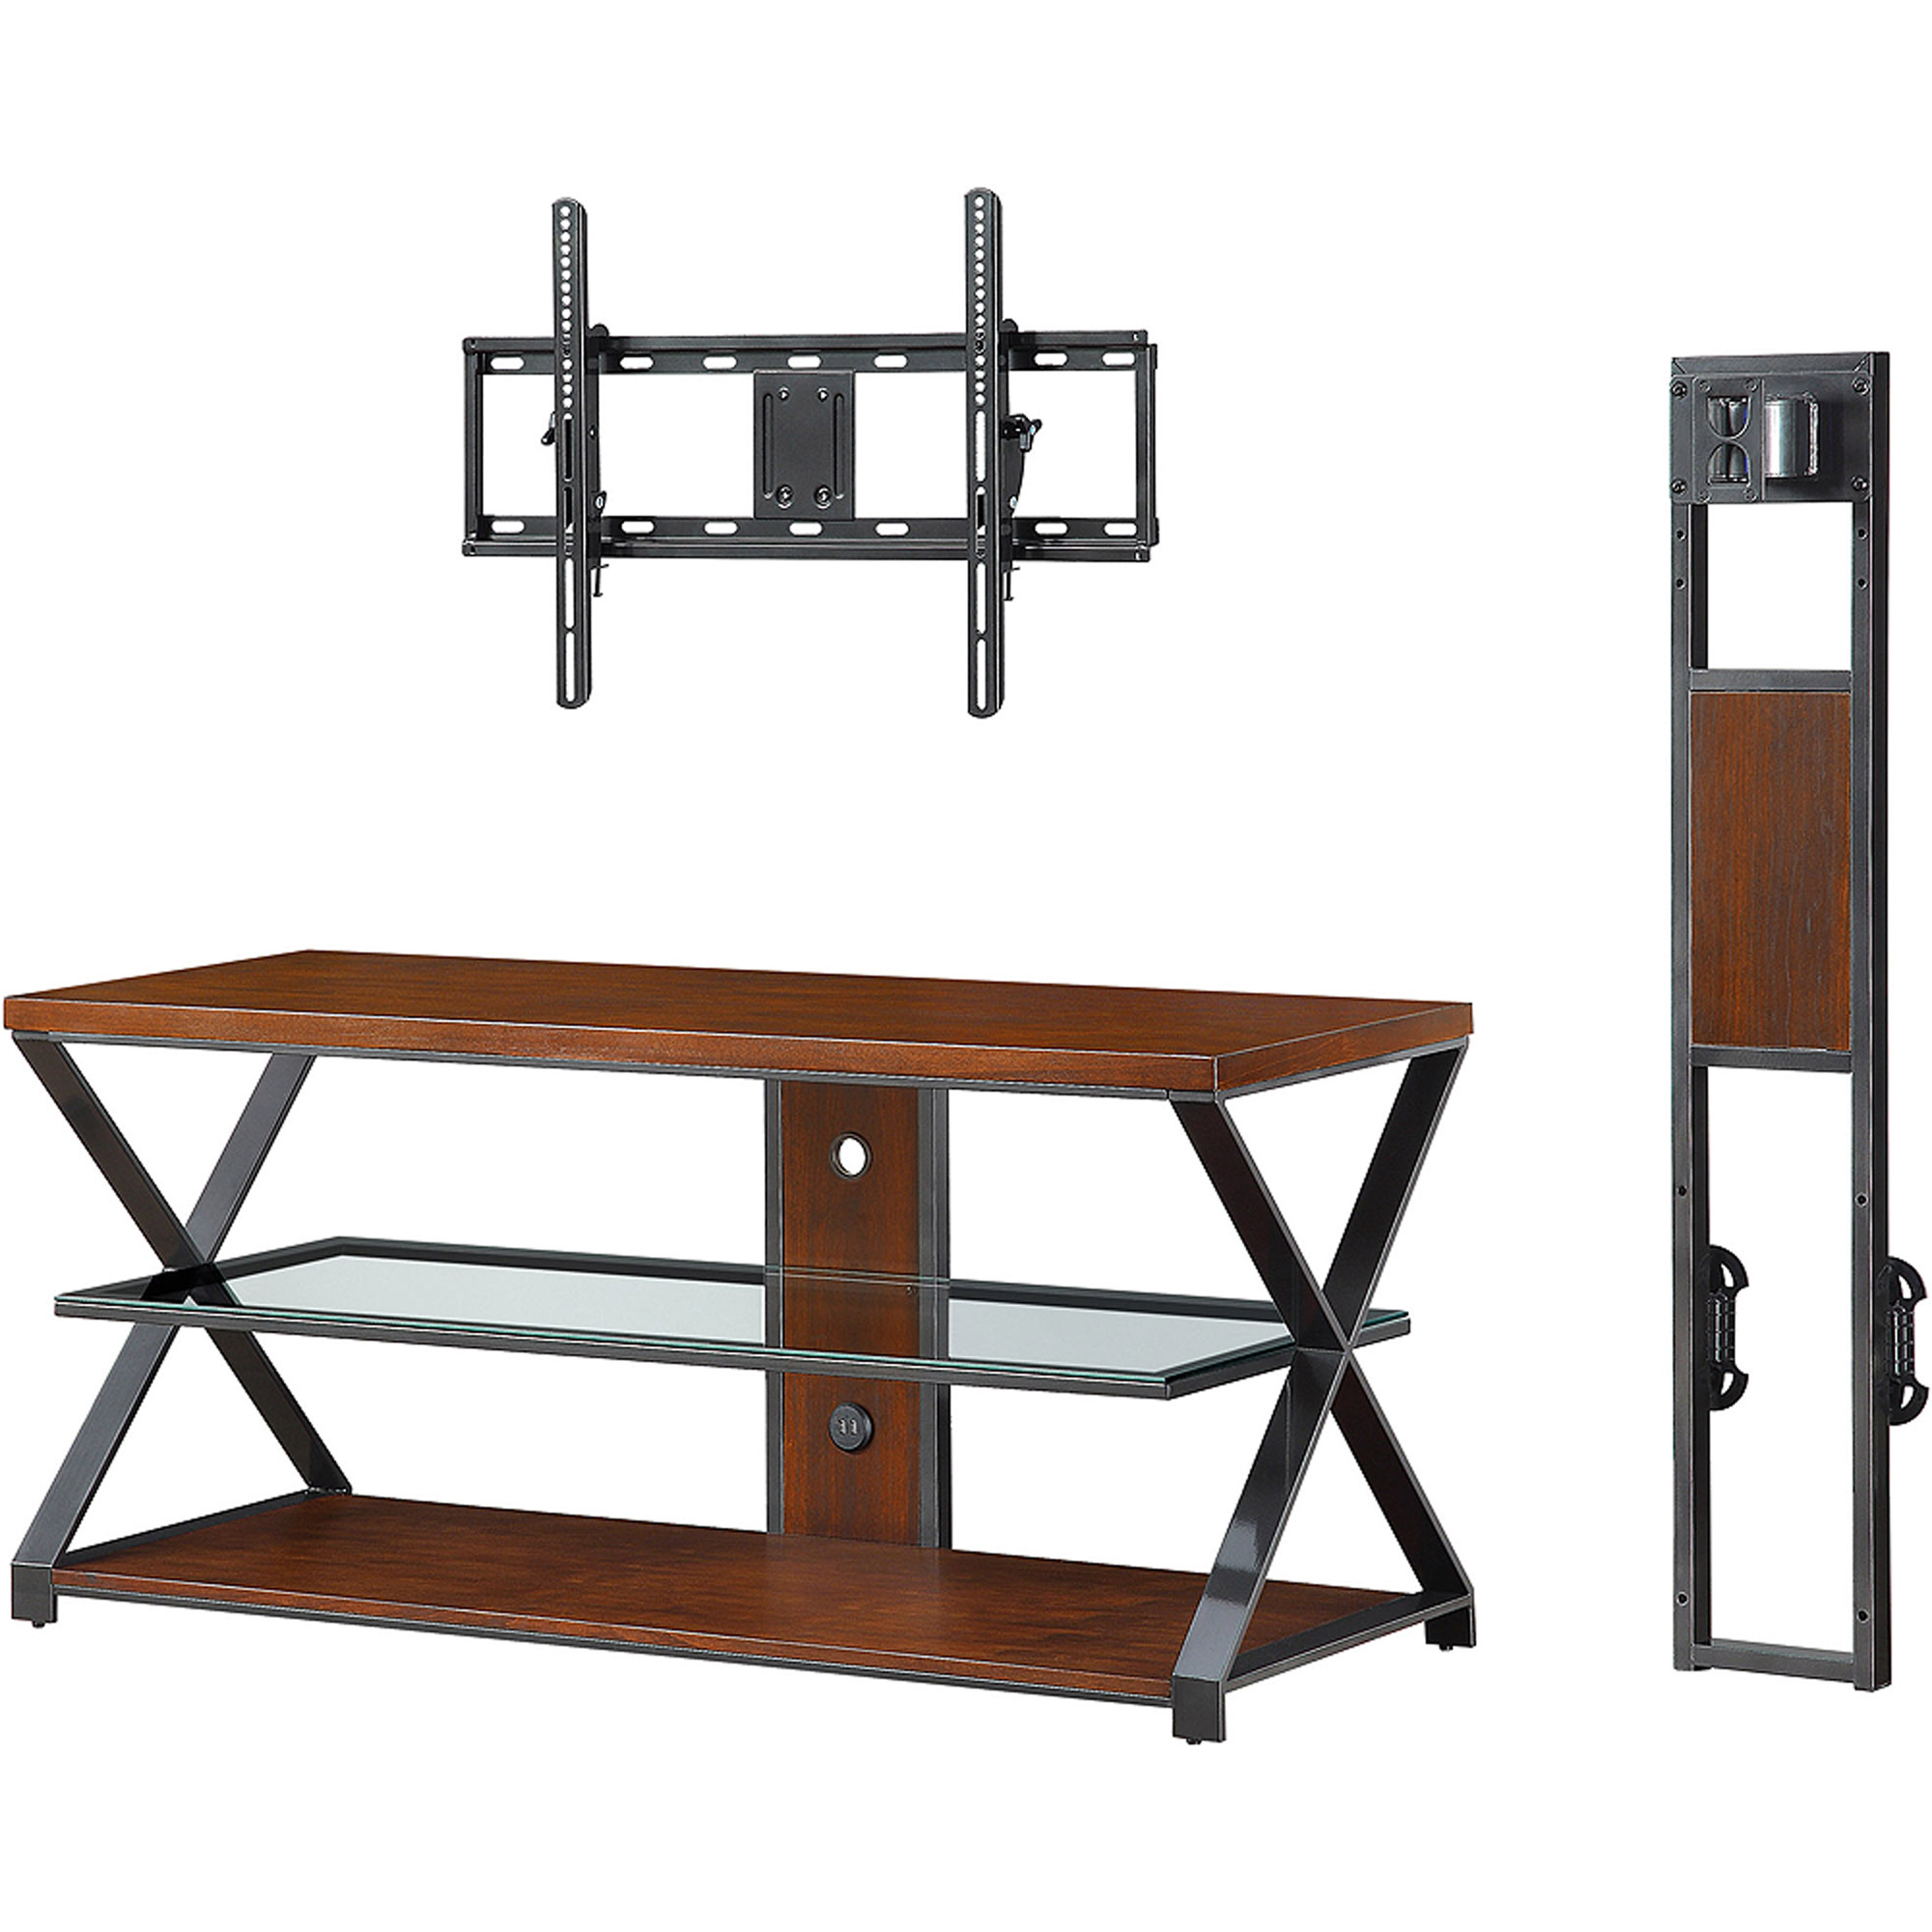 Sarah Tv Stands: Jaxon 3 In 1 Cognac Tv Stand For Tvs Up To 70'' Throughout Jaxon 65 Inch Tv Stands (View 16 of 20)